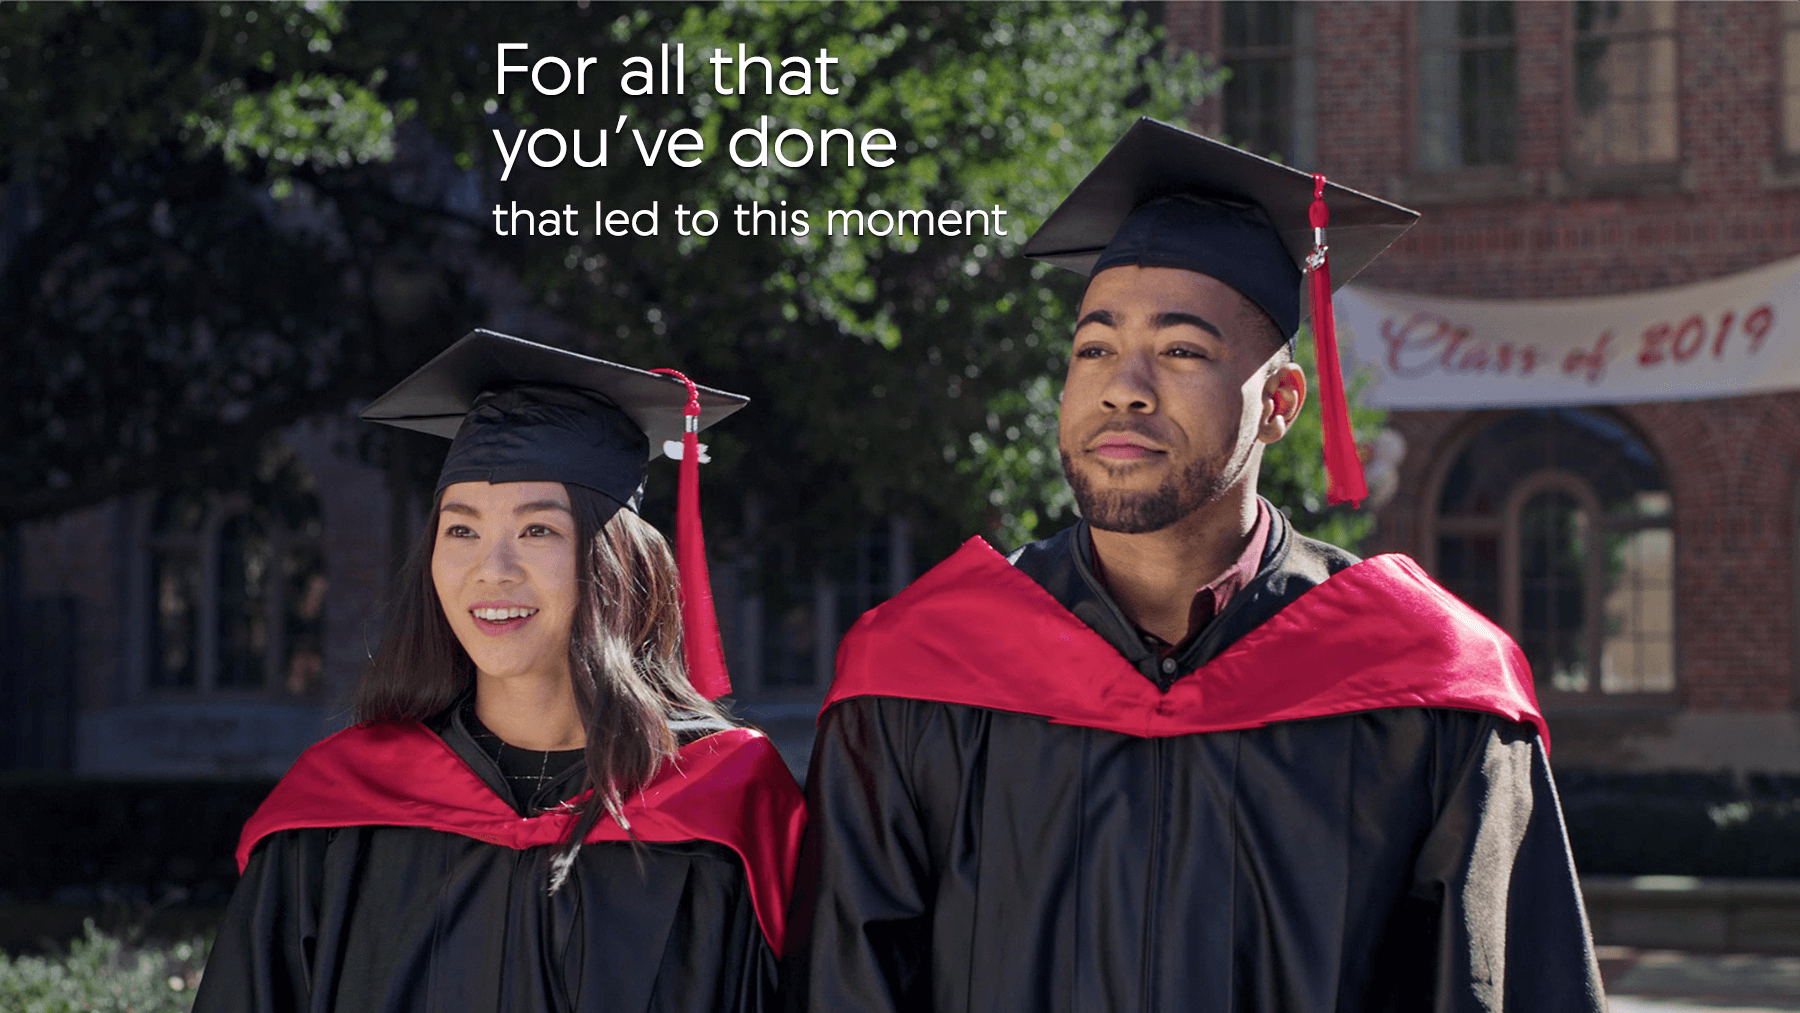 Acura College Graduate Program Graduation Moment Image